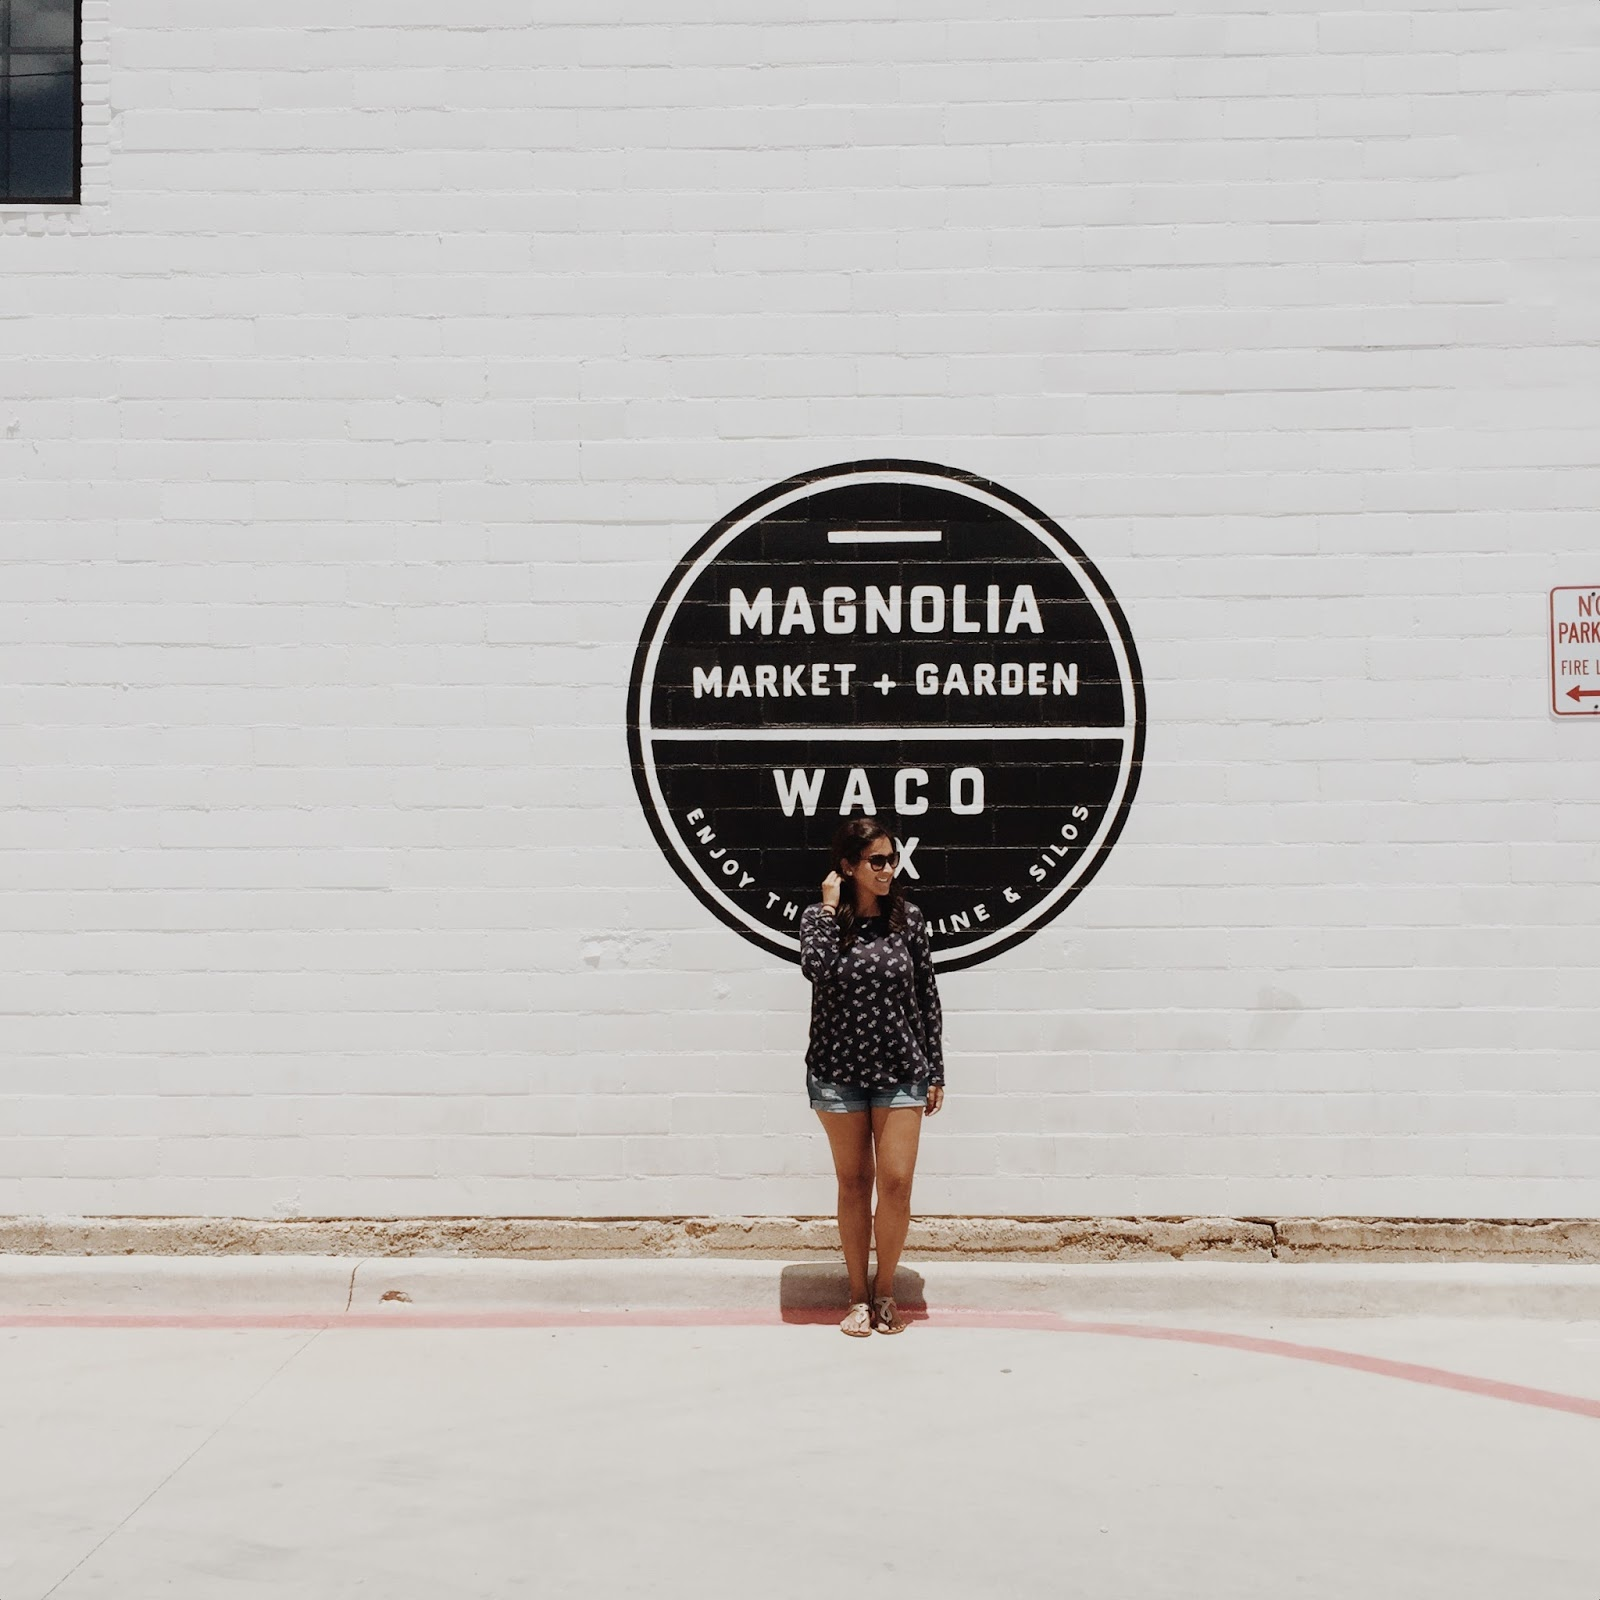 WACO GUIDE: The Findery